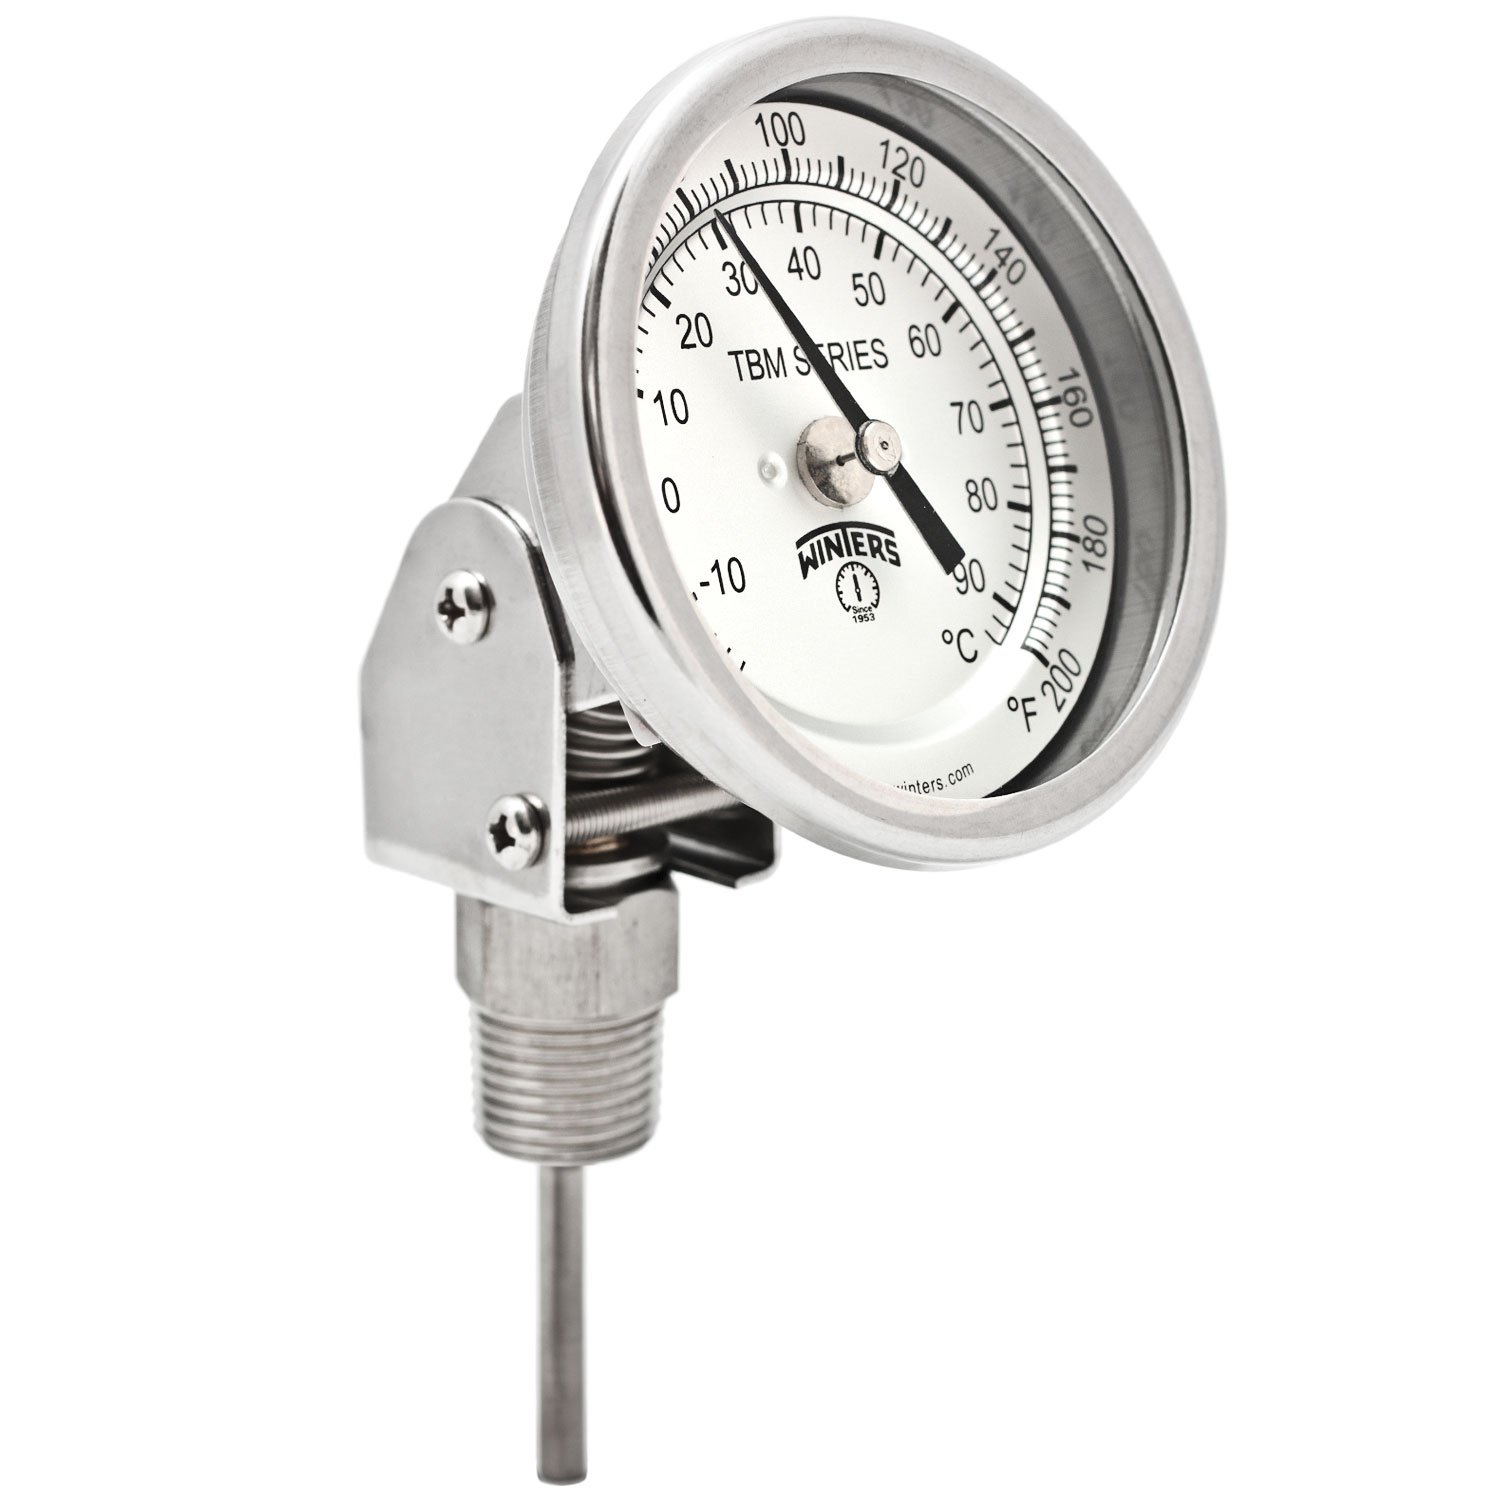 Winters TBM Series Stainless Steel 304 Dual Scale Bi-Metal Thermometer, 2-1/2'' Stem, 1/2'' NPT Adjustable Angle Connection, 3'' Dial, 0-200 F/C Range